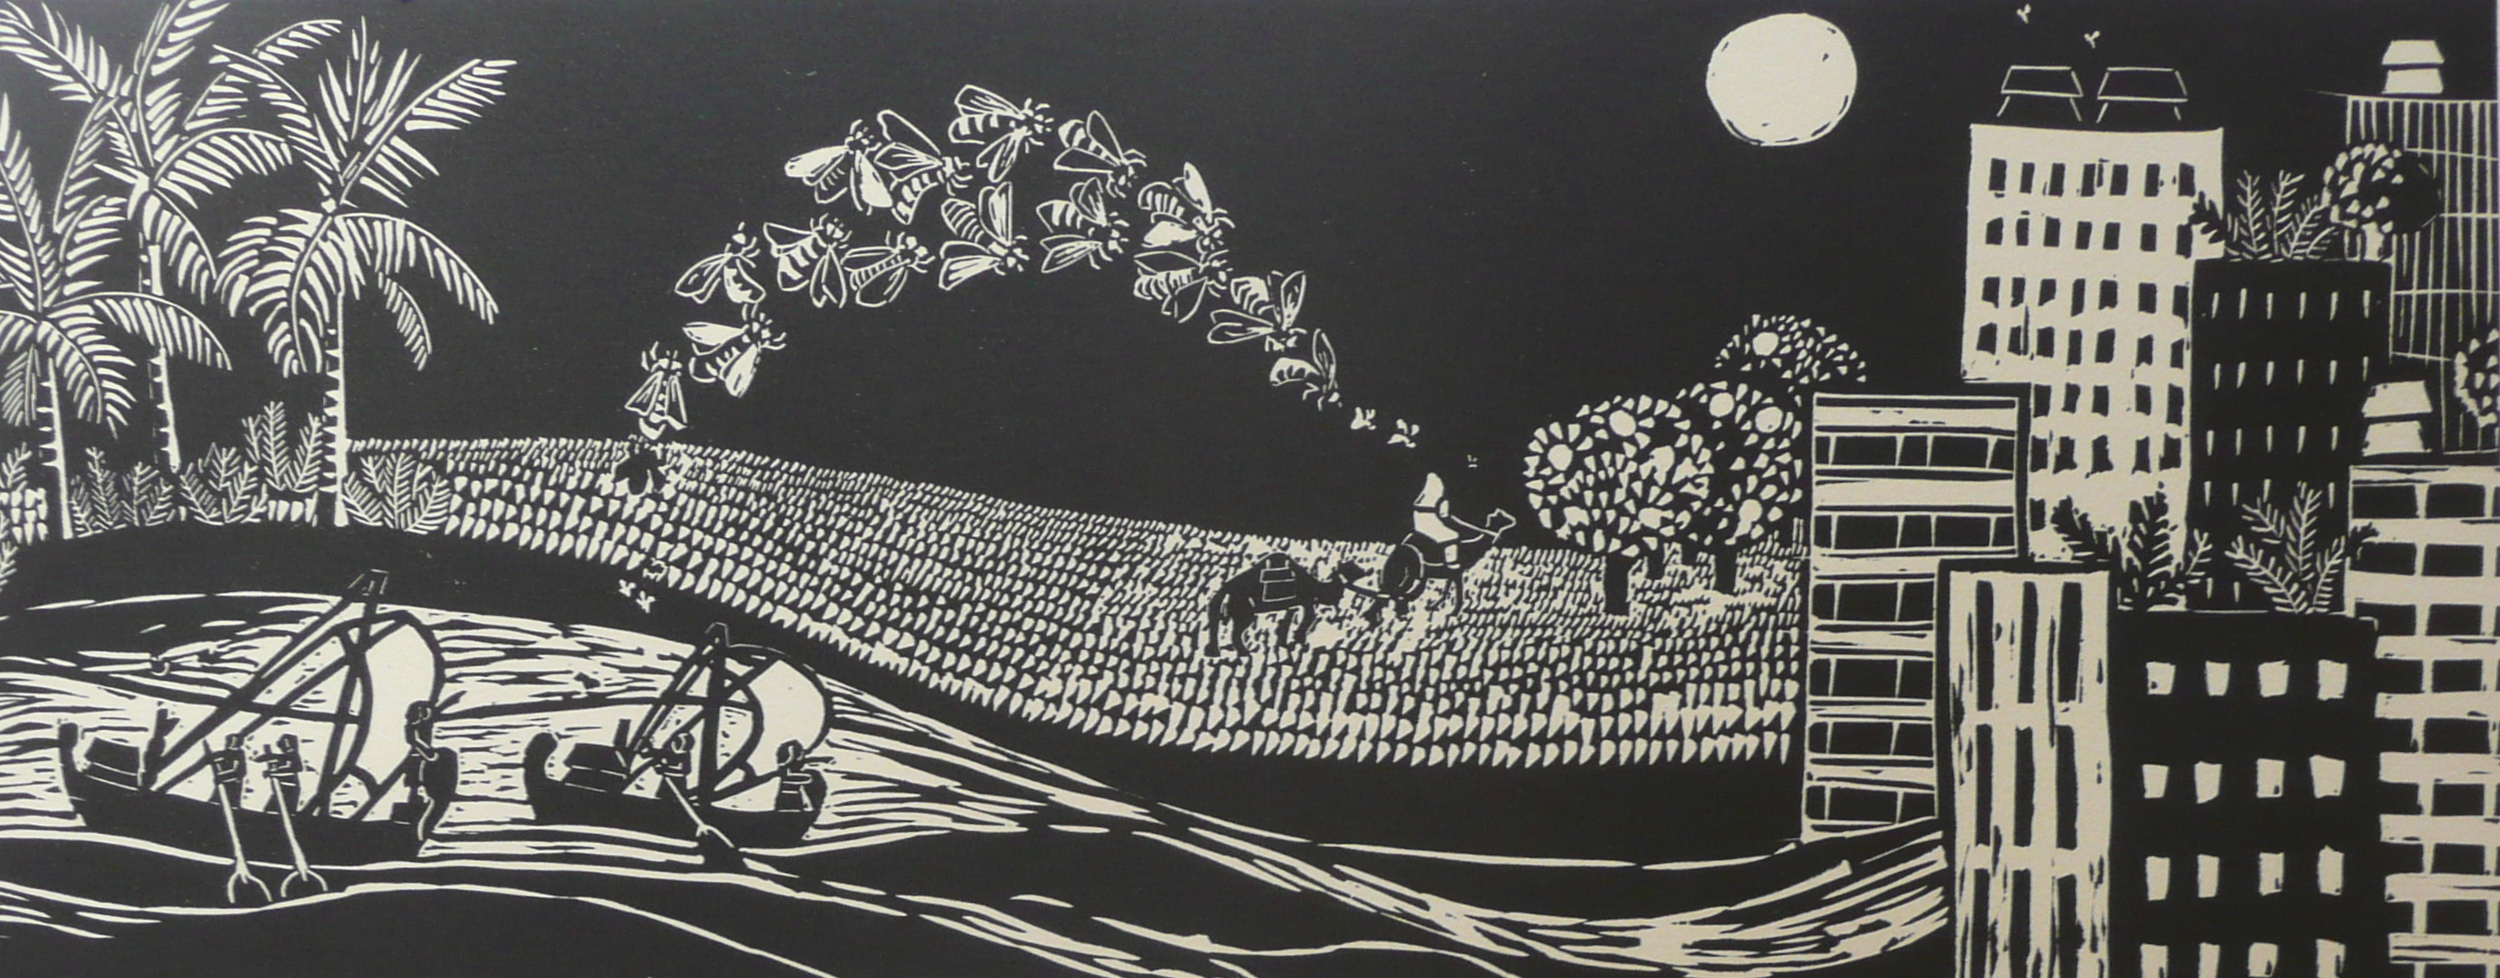 The Journey of Bees   Linocut, 2011  Edition of 2  Image size: 22 cm x 56.5 cm  SOLD OUT  Originally created as an artist book (edition of 10),   The Journey of Bees    was inspired by the relationship humans have had with bees over the centuries. In ancient Egypt, men would place the hives on boats and sail down the Nile to allow the bees exposure to different plants. Similarly, in Palestine the hives would be placed on the backs of camels and taken to orange groves at night. Although cities are growing and societies are becoming more insulated from the natural world, the placement of beehives on top of city buildings shows a return to surrounding ourselves and working with nature.